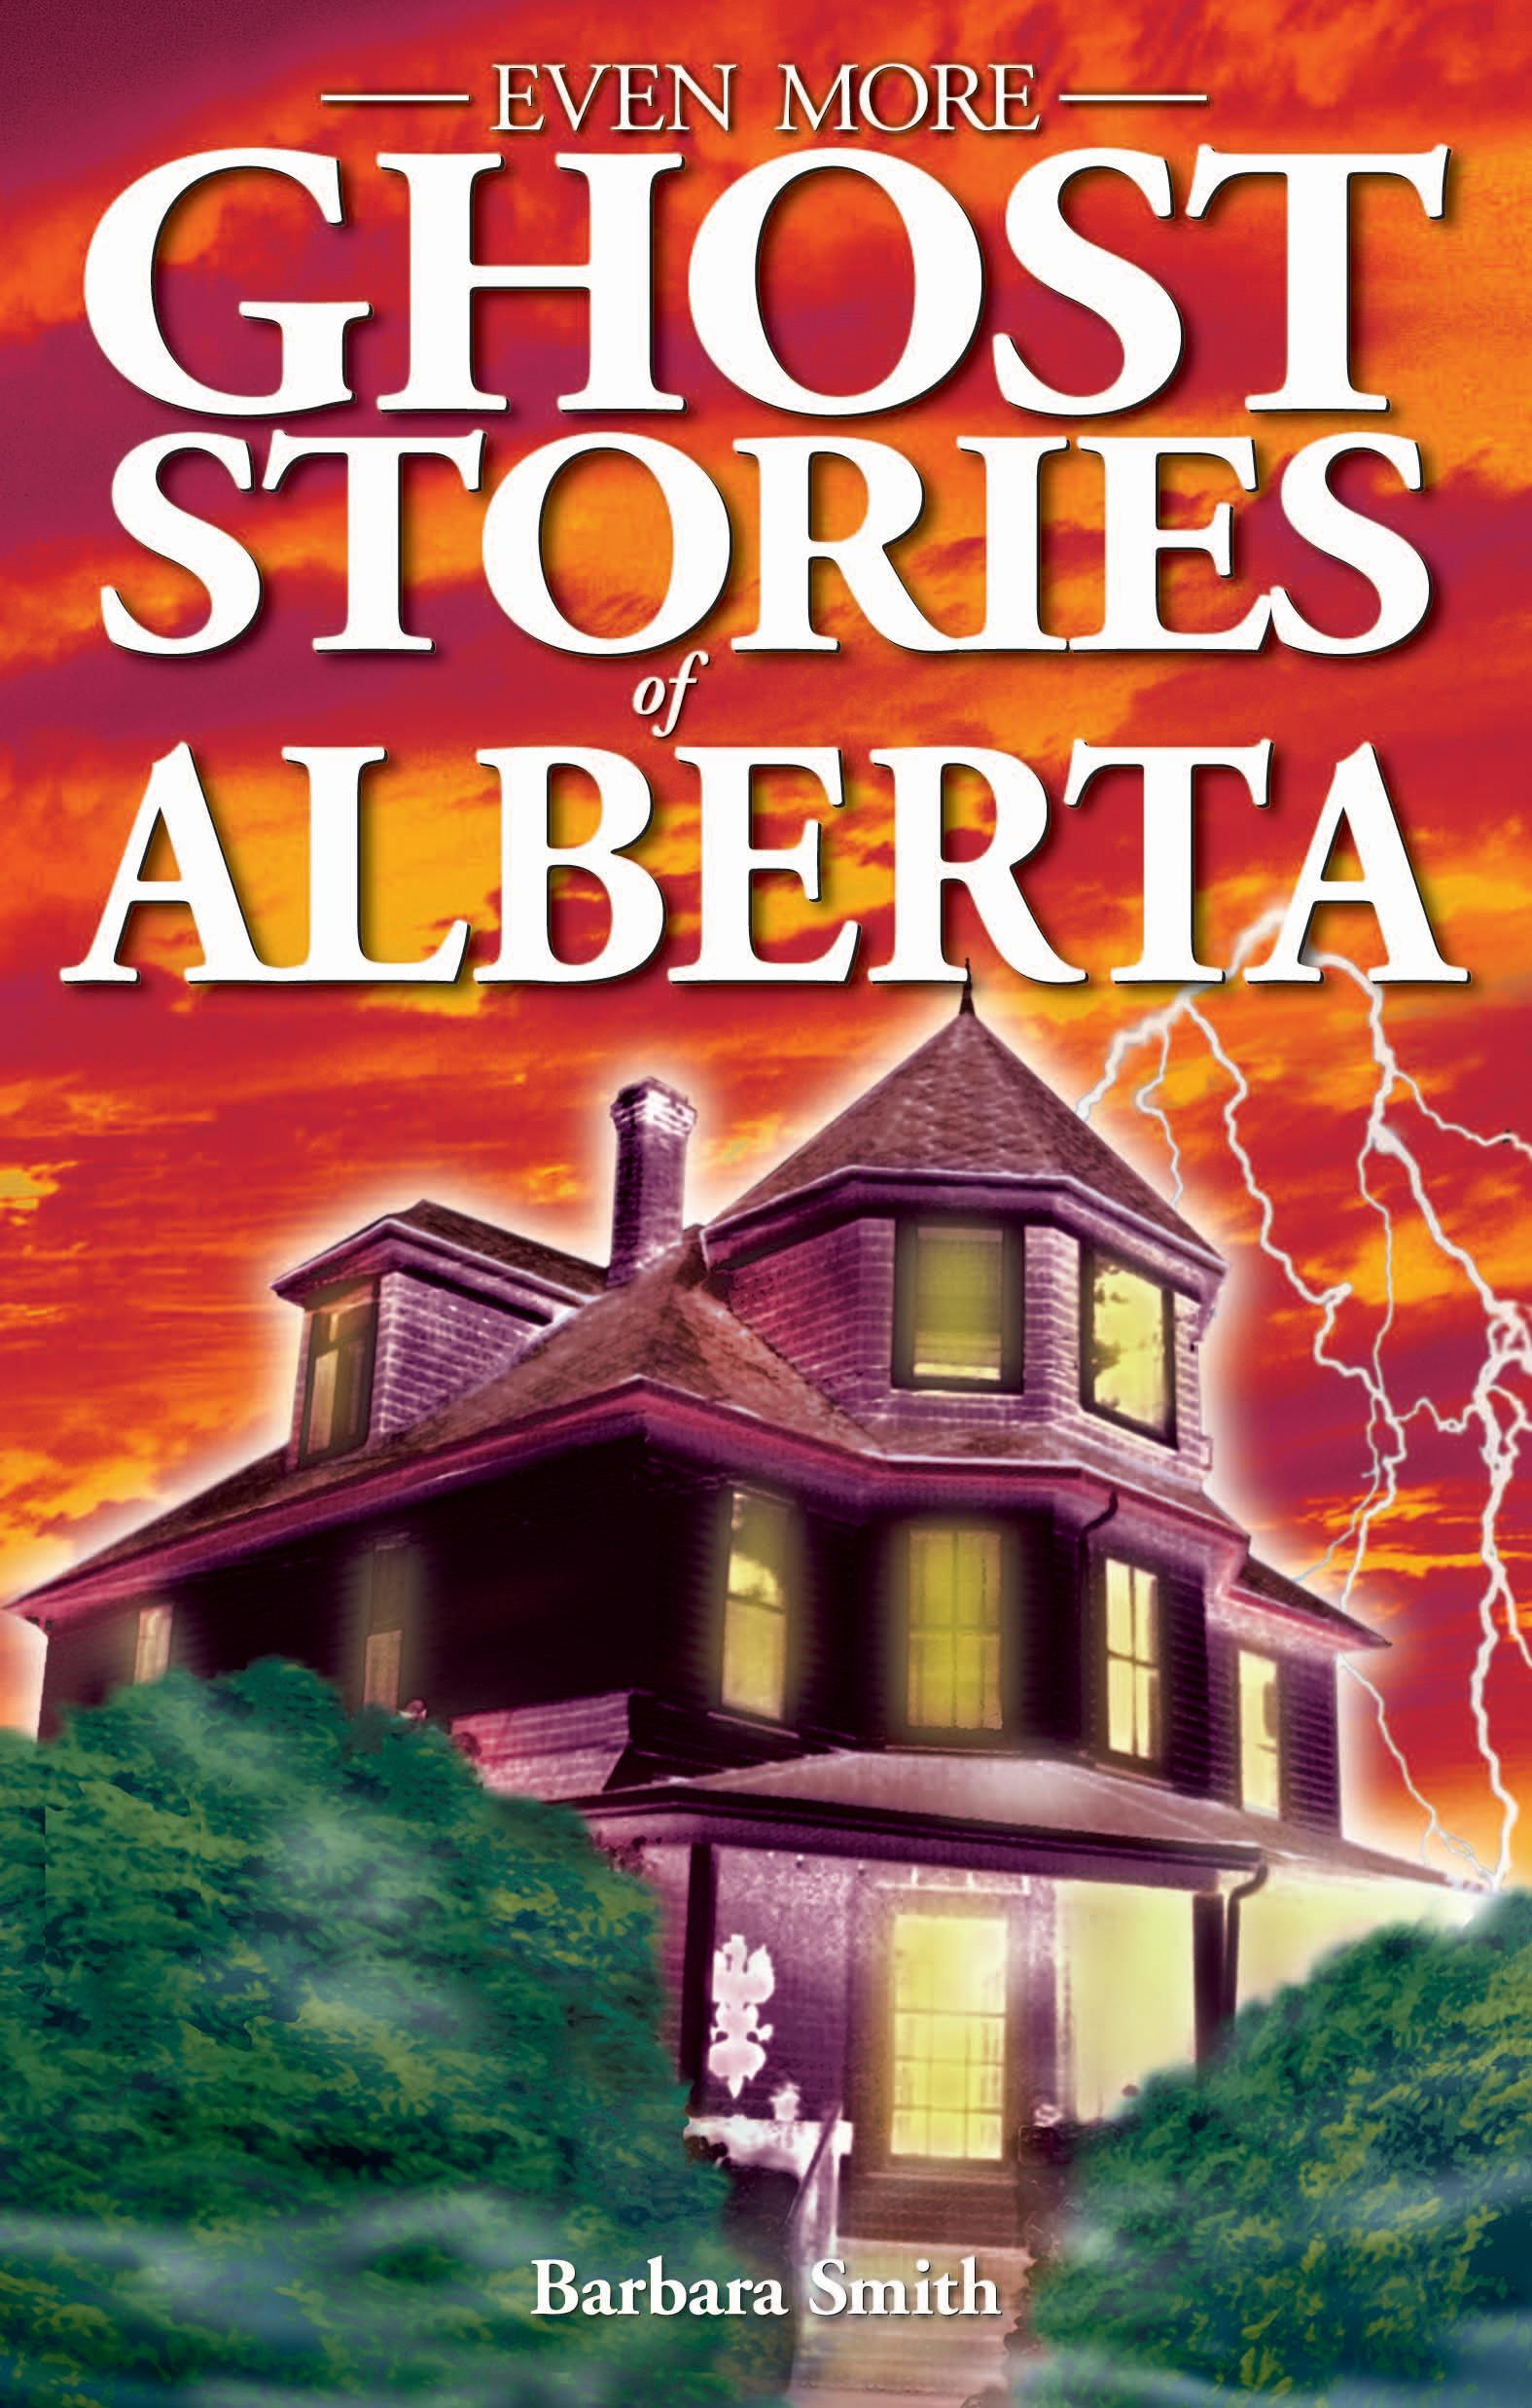 Even More Ghost Stories of Alberta